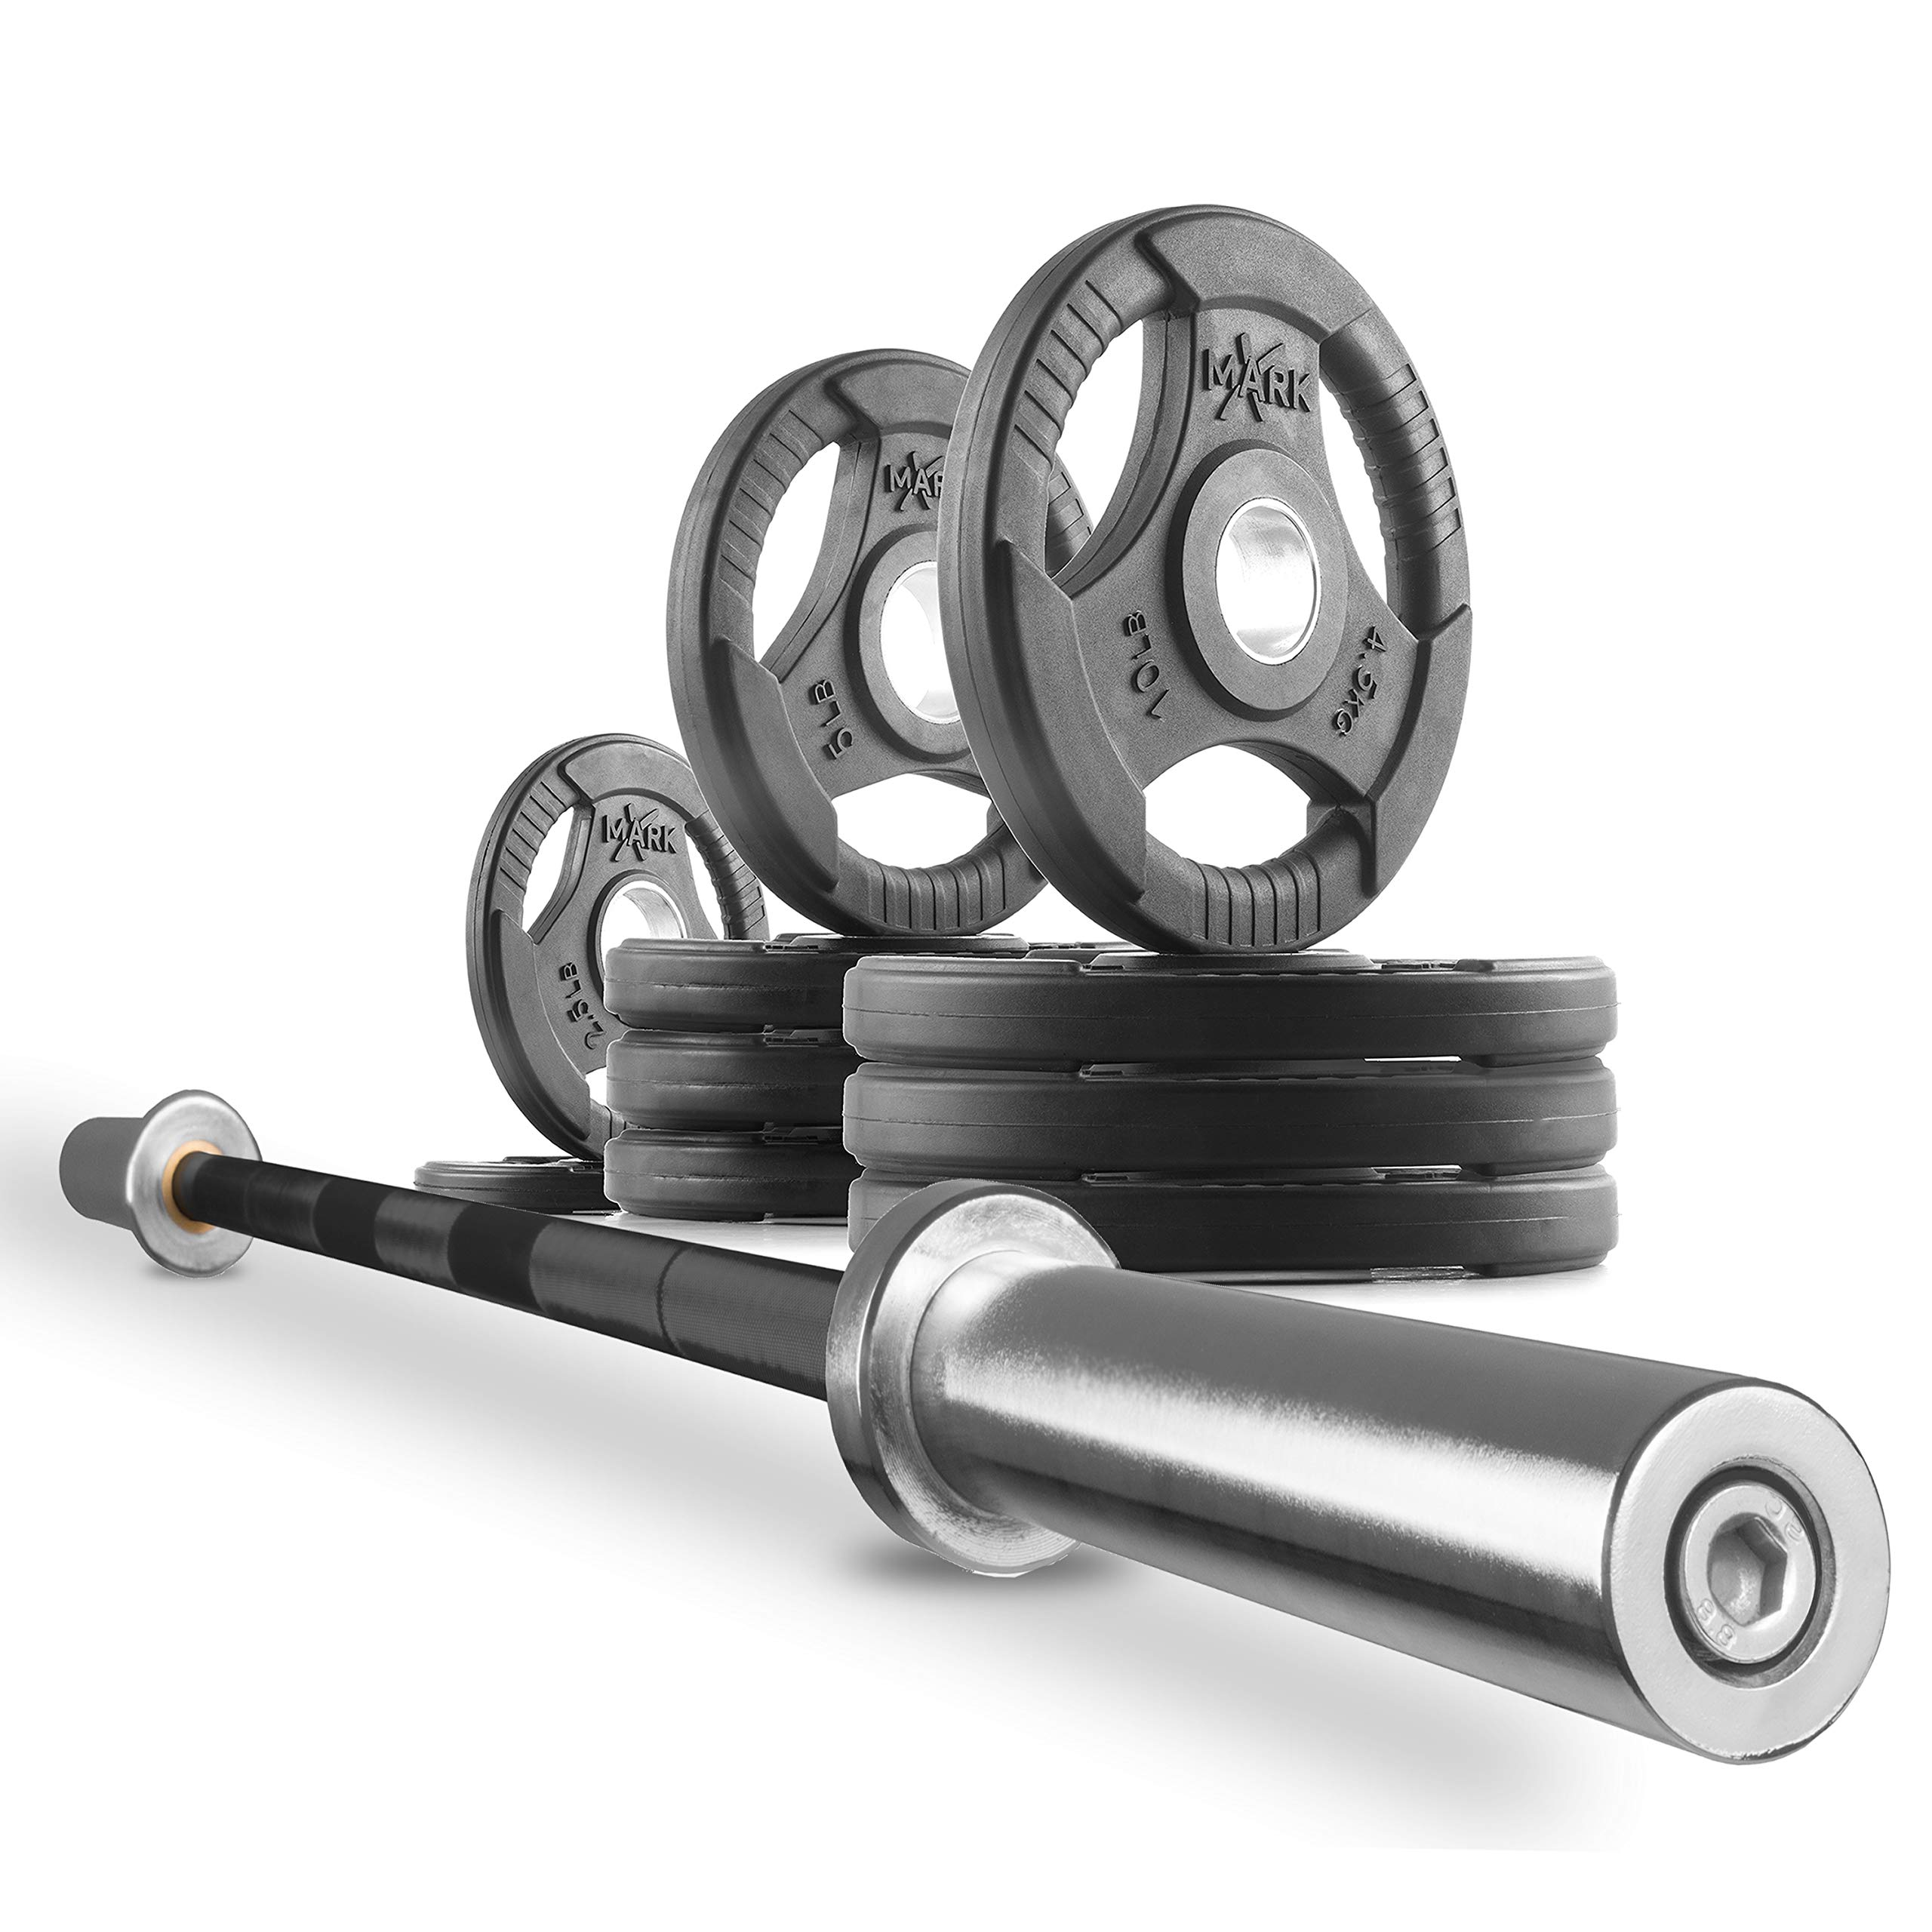 XMark Fitness Combo Offer 7 ft. Olympic Excercise Barbell XM-3817-BLACK with Premium Quality Rubber Coated Tri-Grip Olympic Weights Set XM-3377-BAL-65